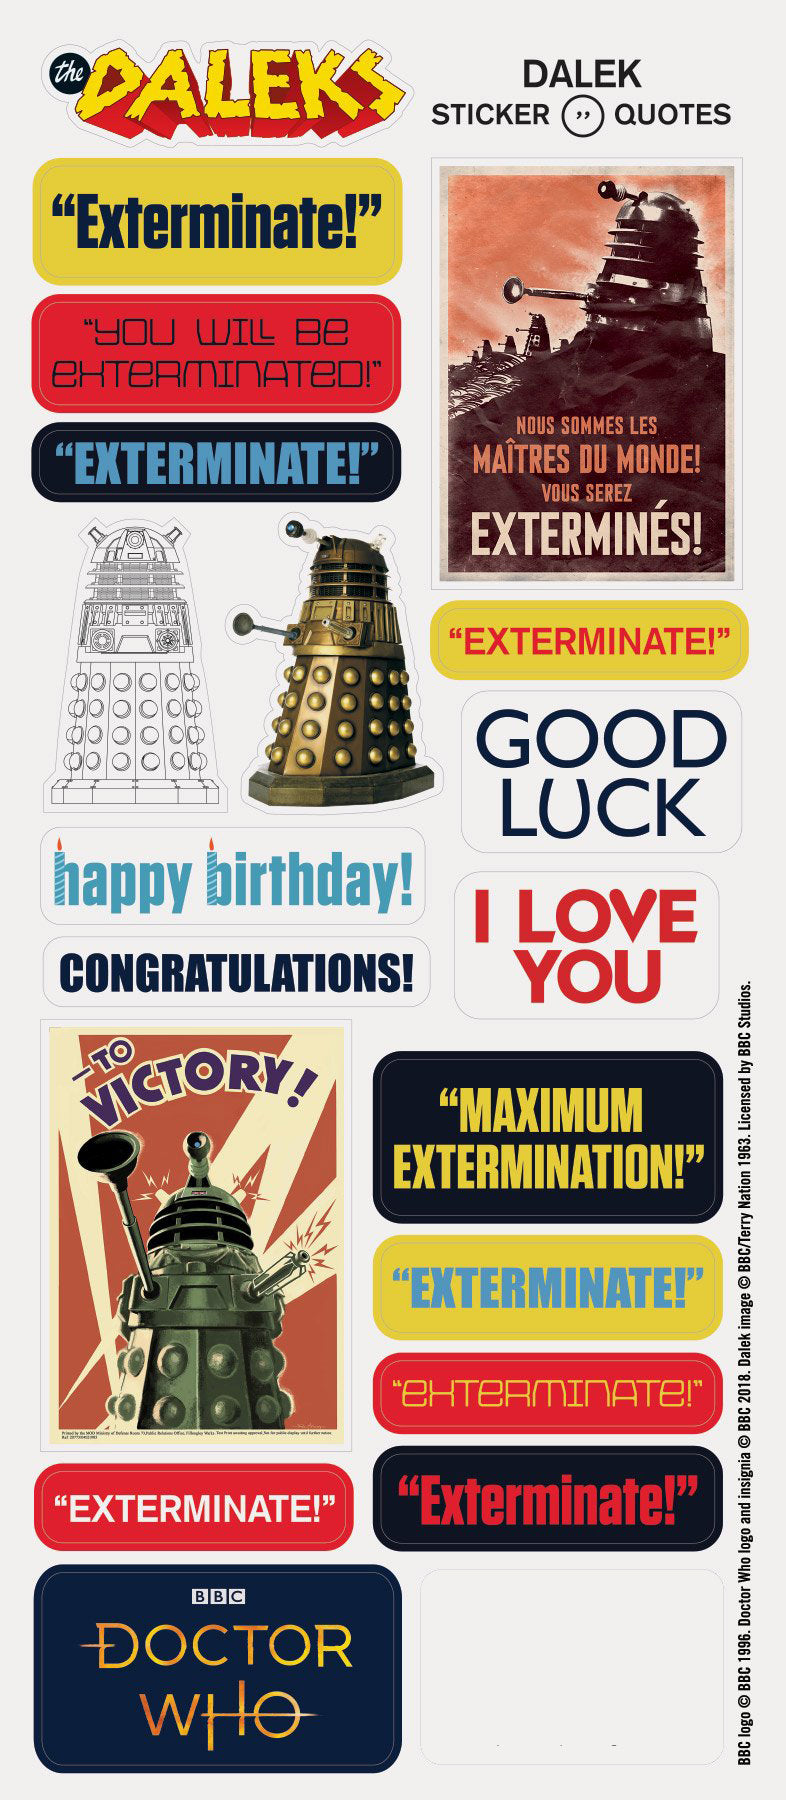 BBC Doctor Who Dalek Greeting Card and Stickers - Pop Culture Spot